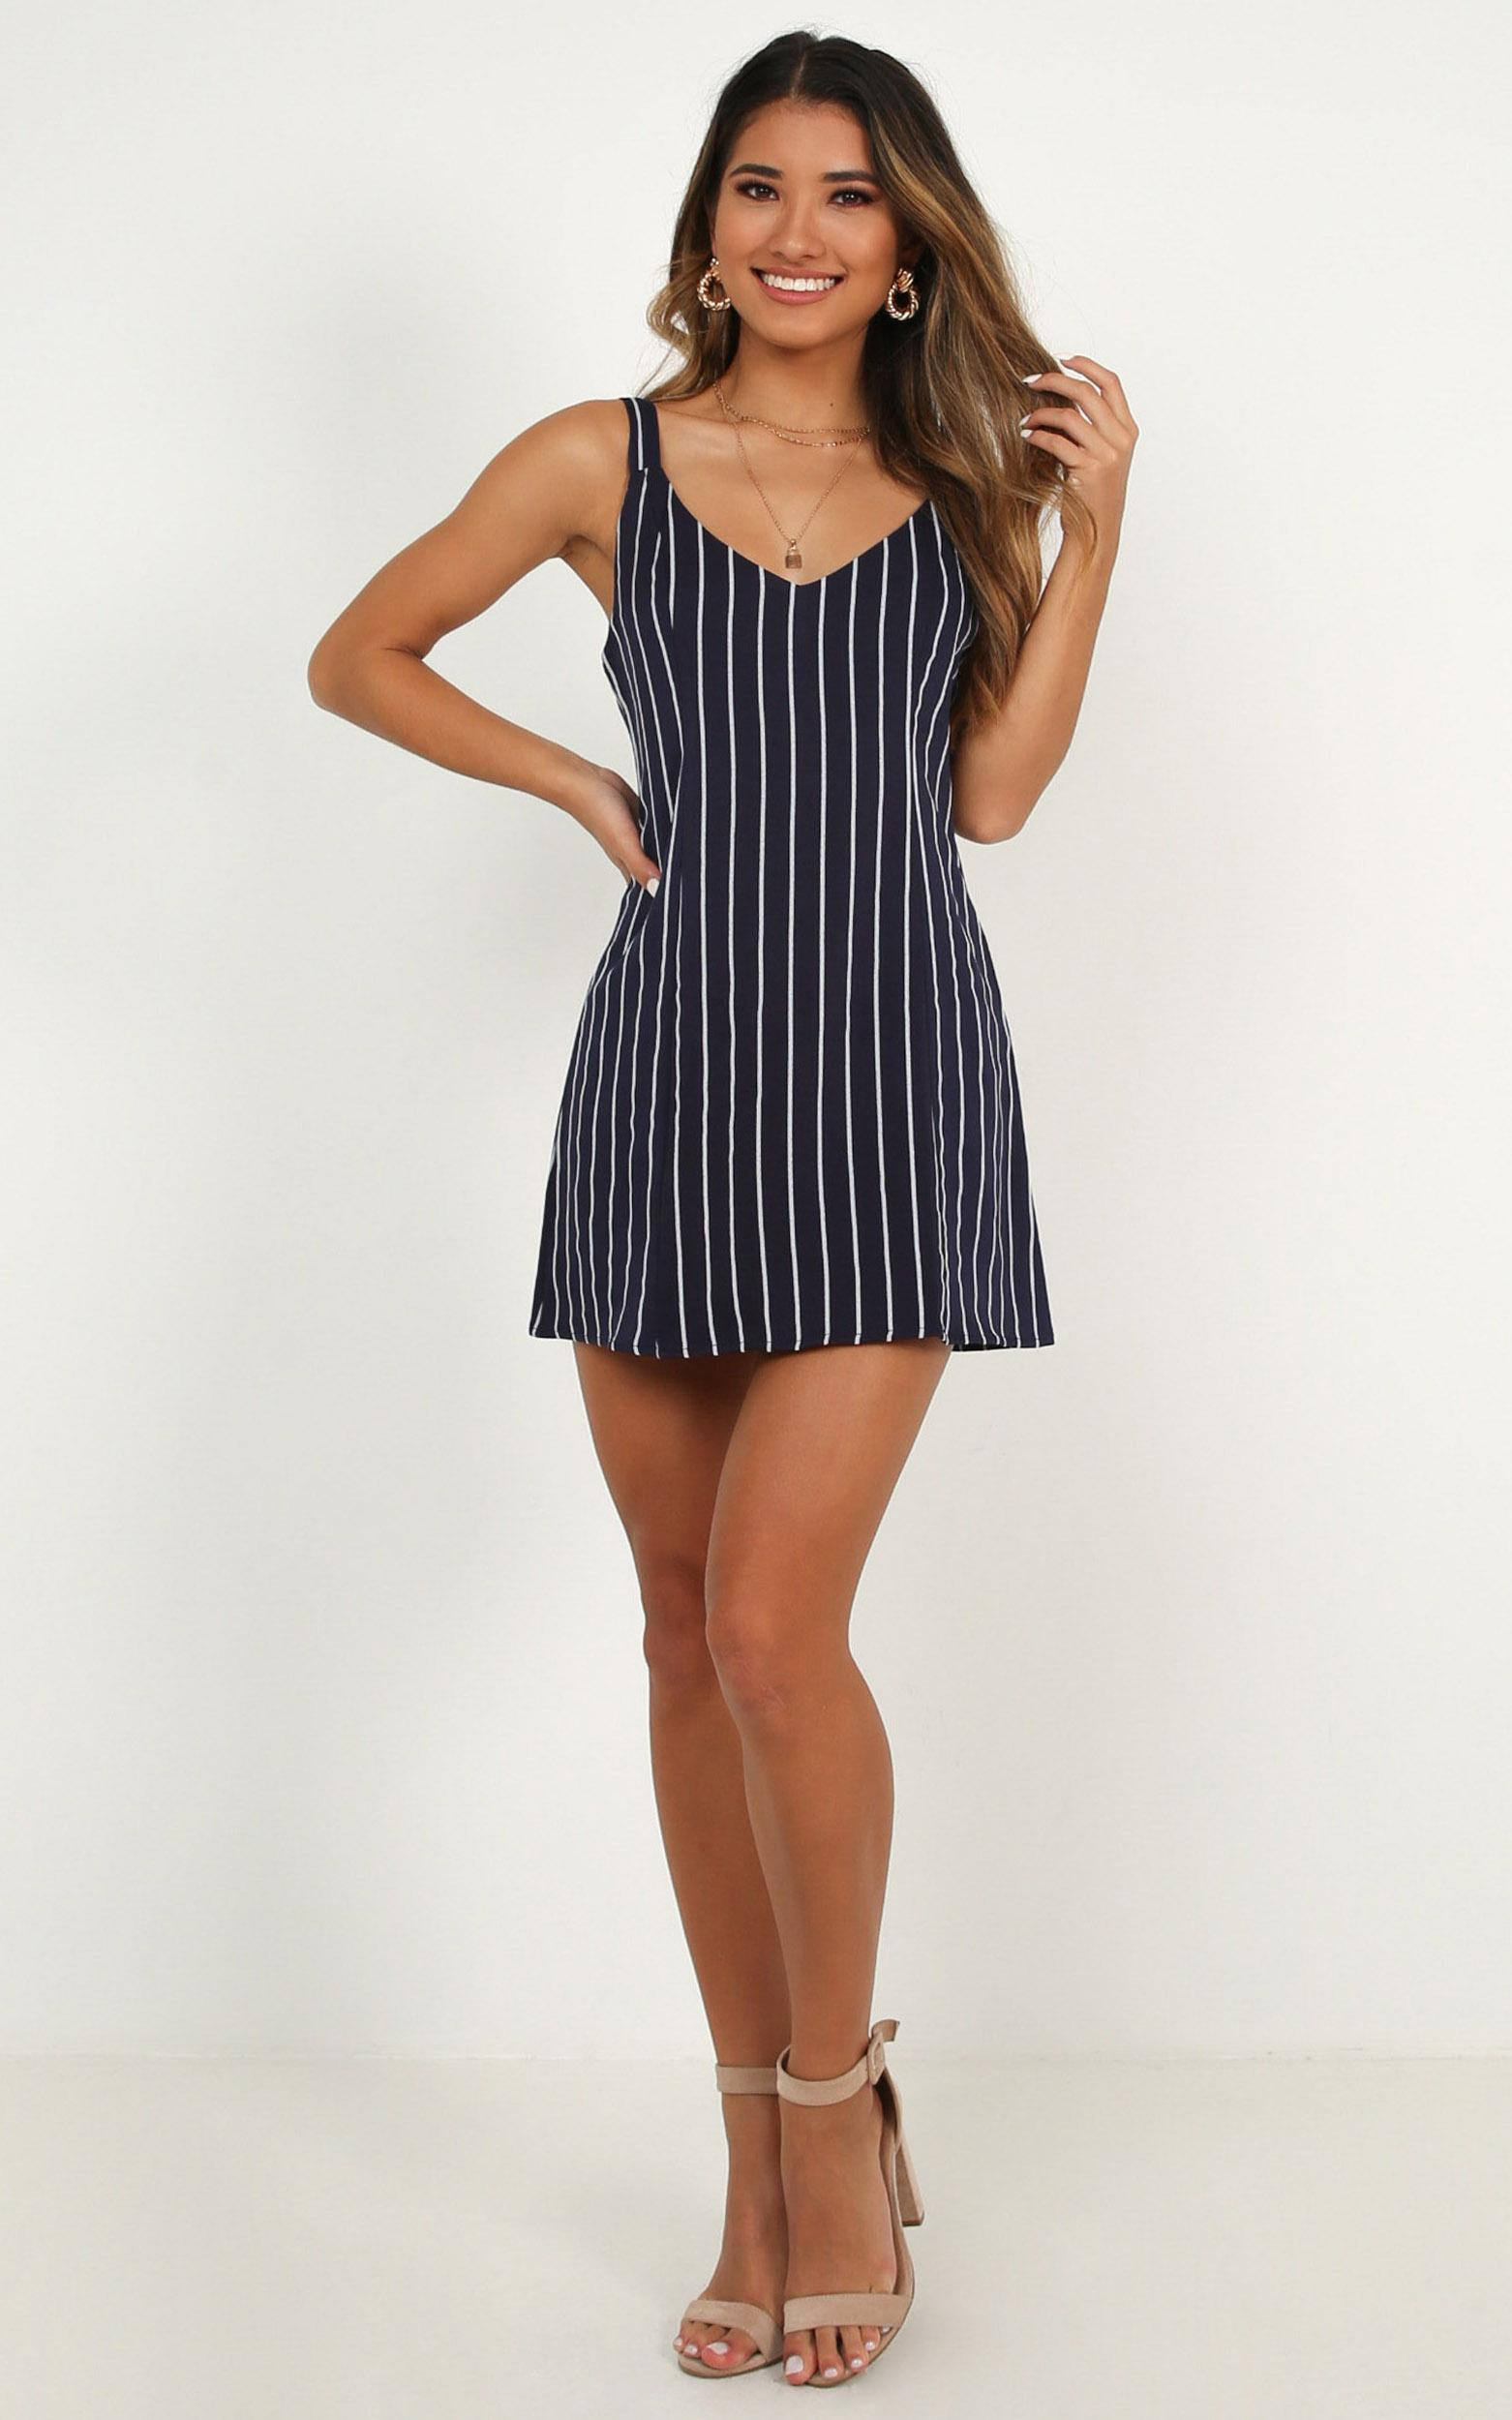 All This Time Dress In navy stripe - 14 (XL), Navy, hi-res image number null